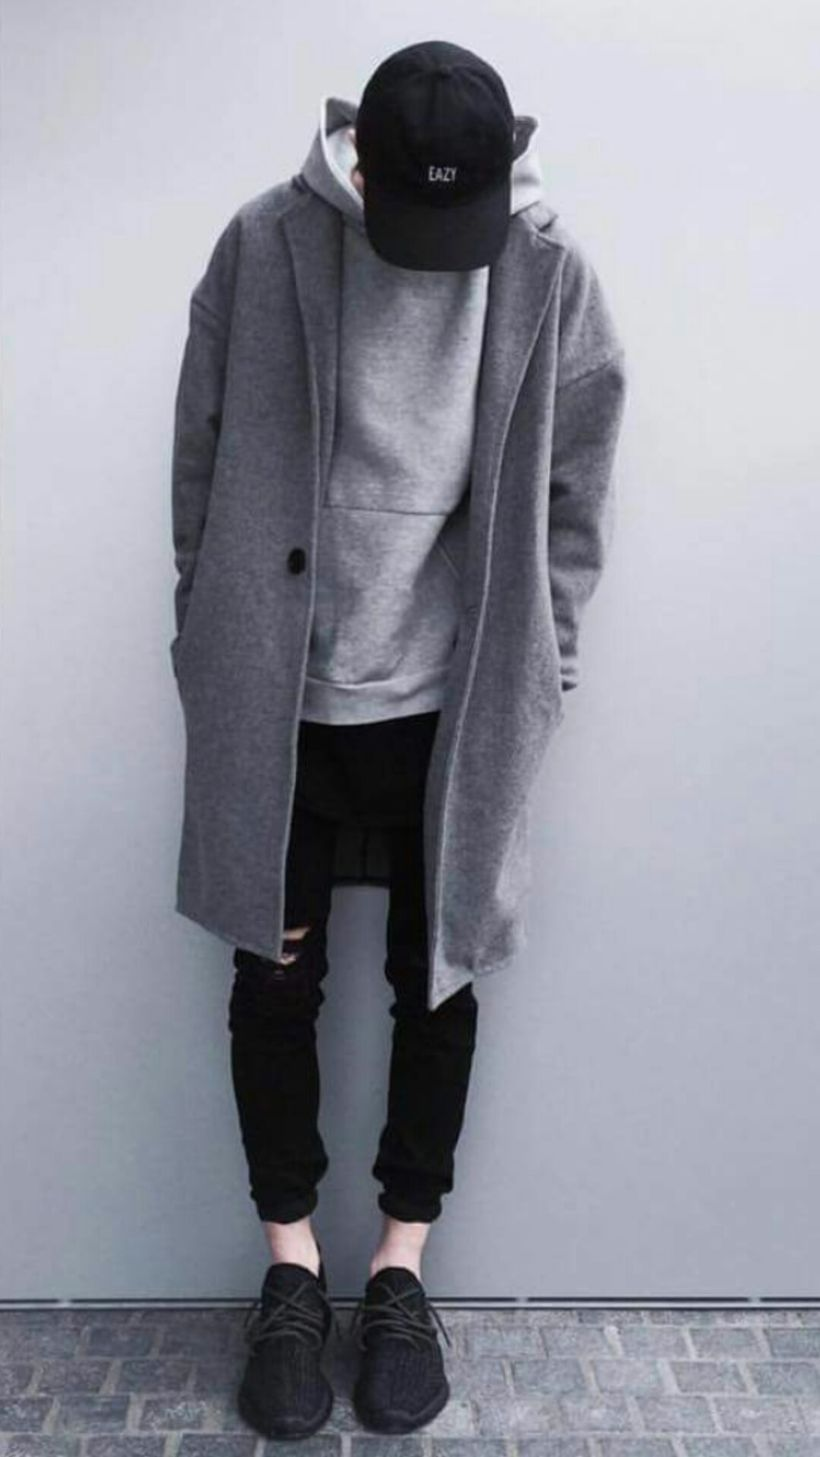 Inspiring mens classy style fashions outfits 60